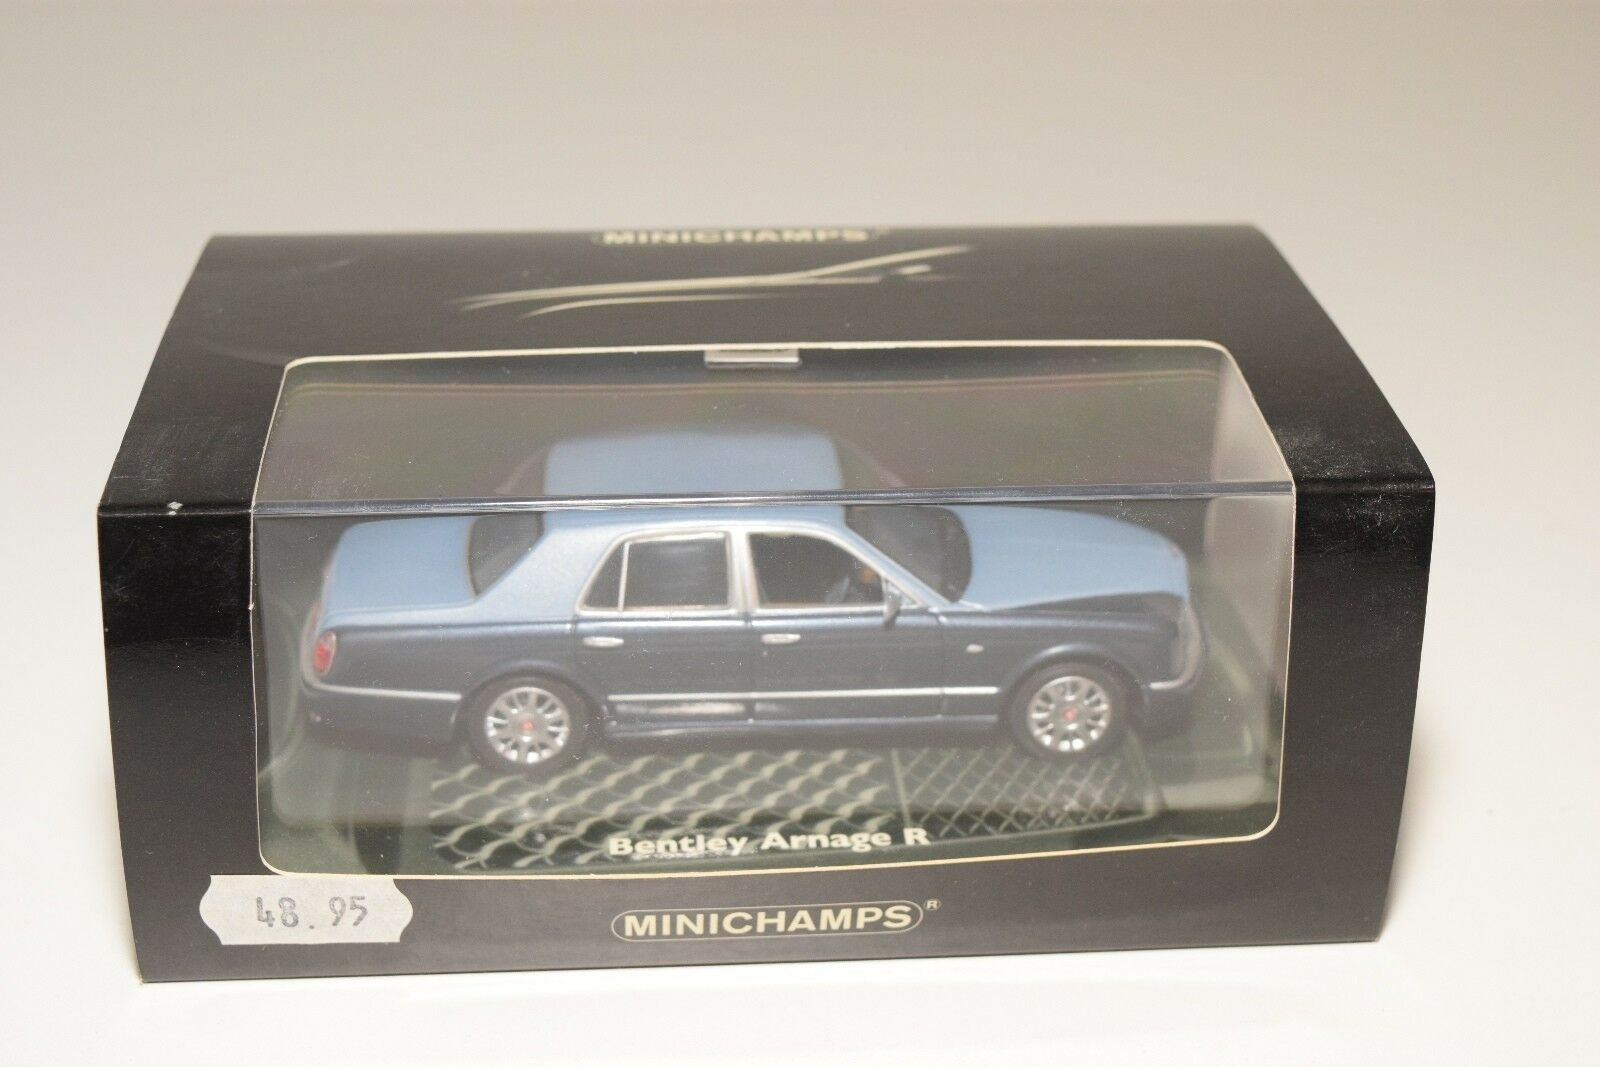 MINICHAMPS BENTLEY ARNAGE R 2003 TWO TONE METALLIC blueE MINT BOXED RARE